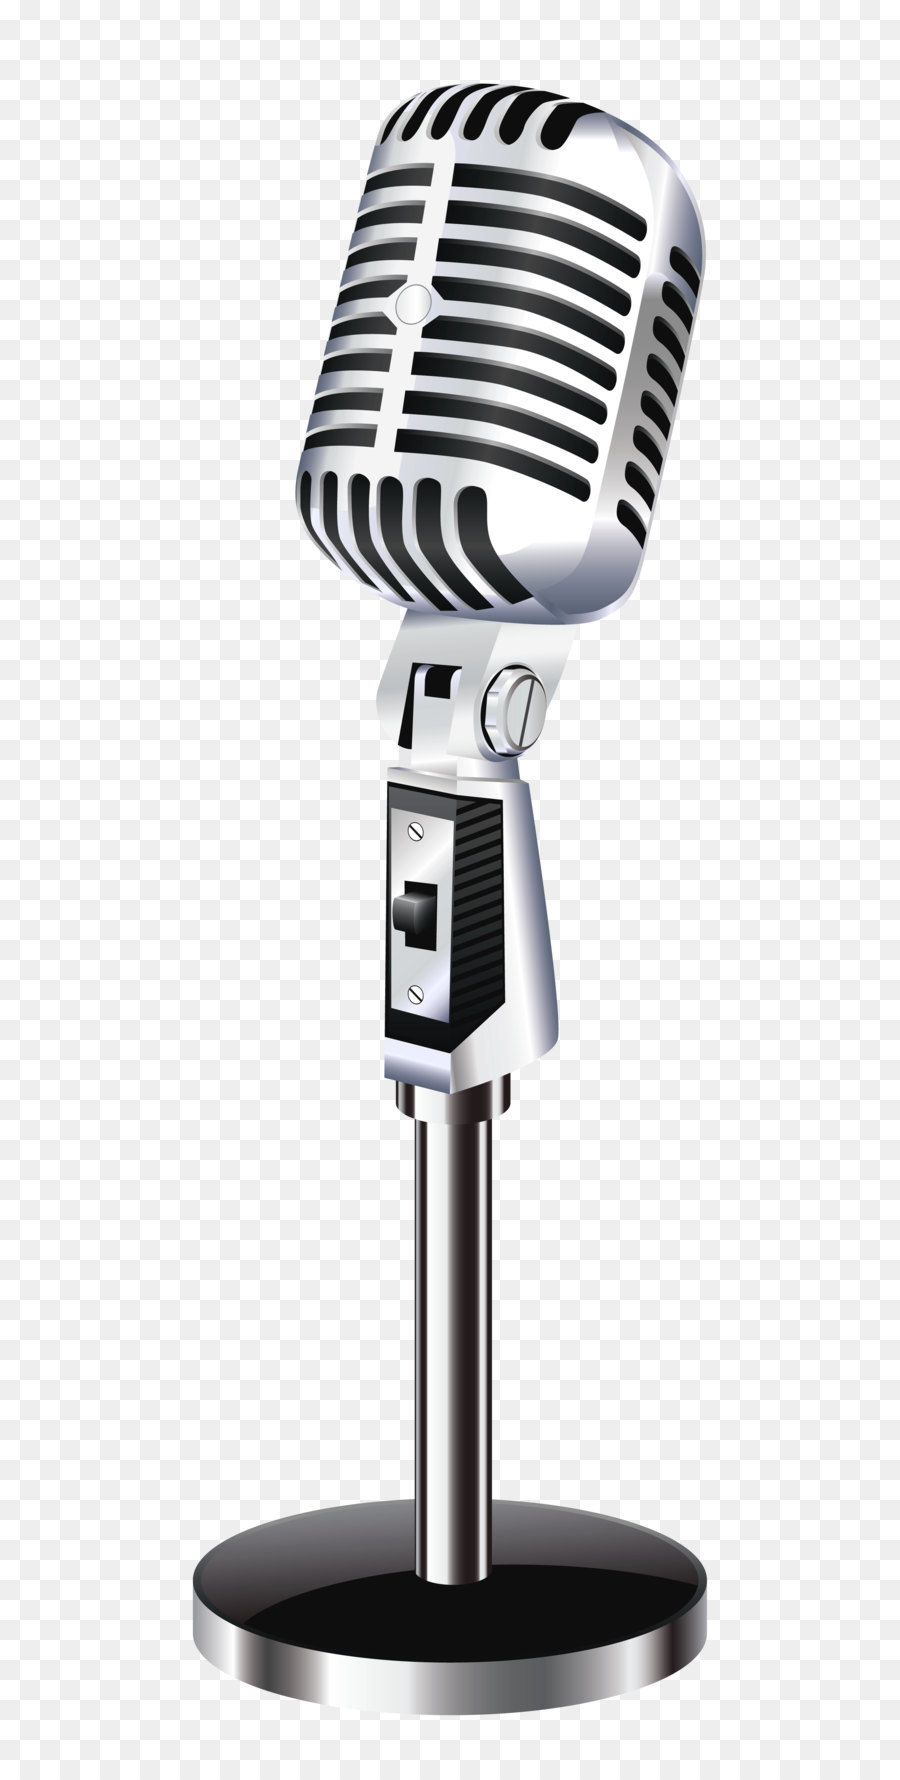 Retro png picture download. Air clipart radio microphone